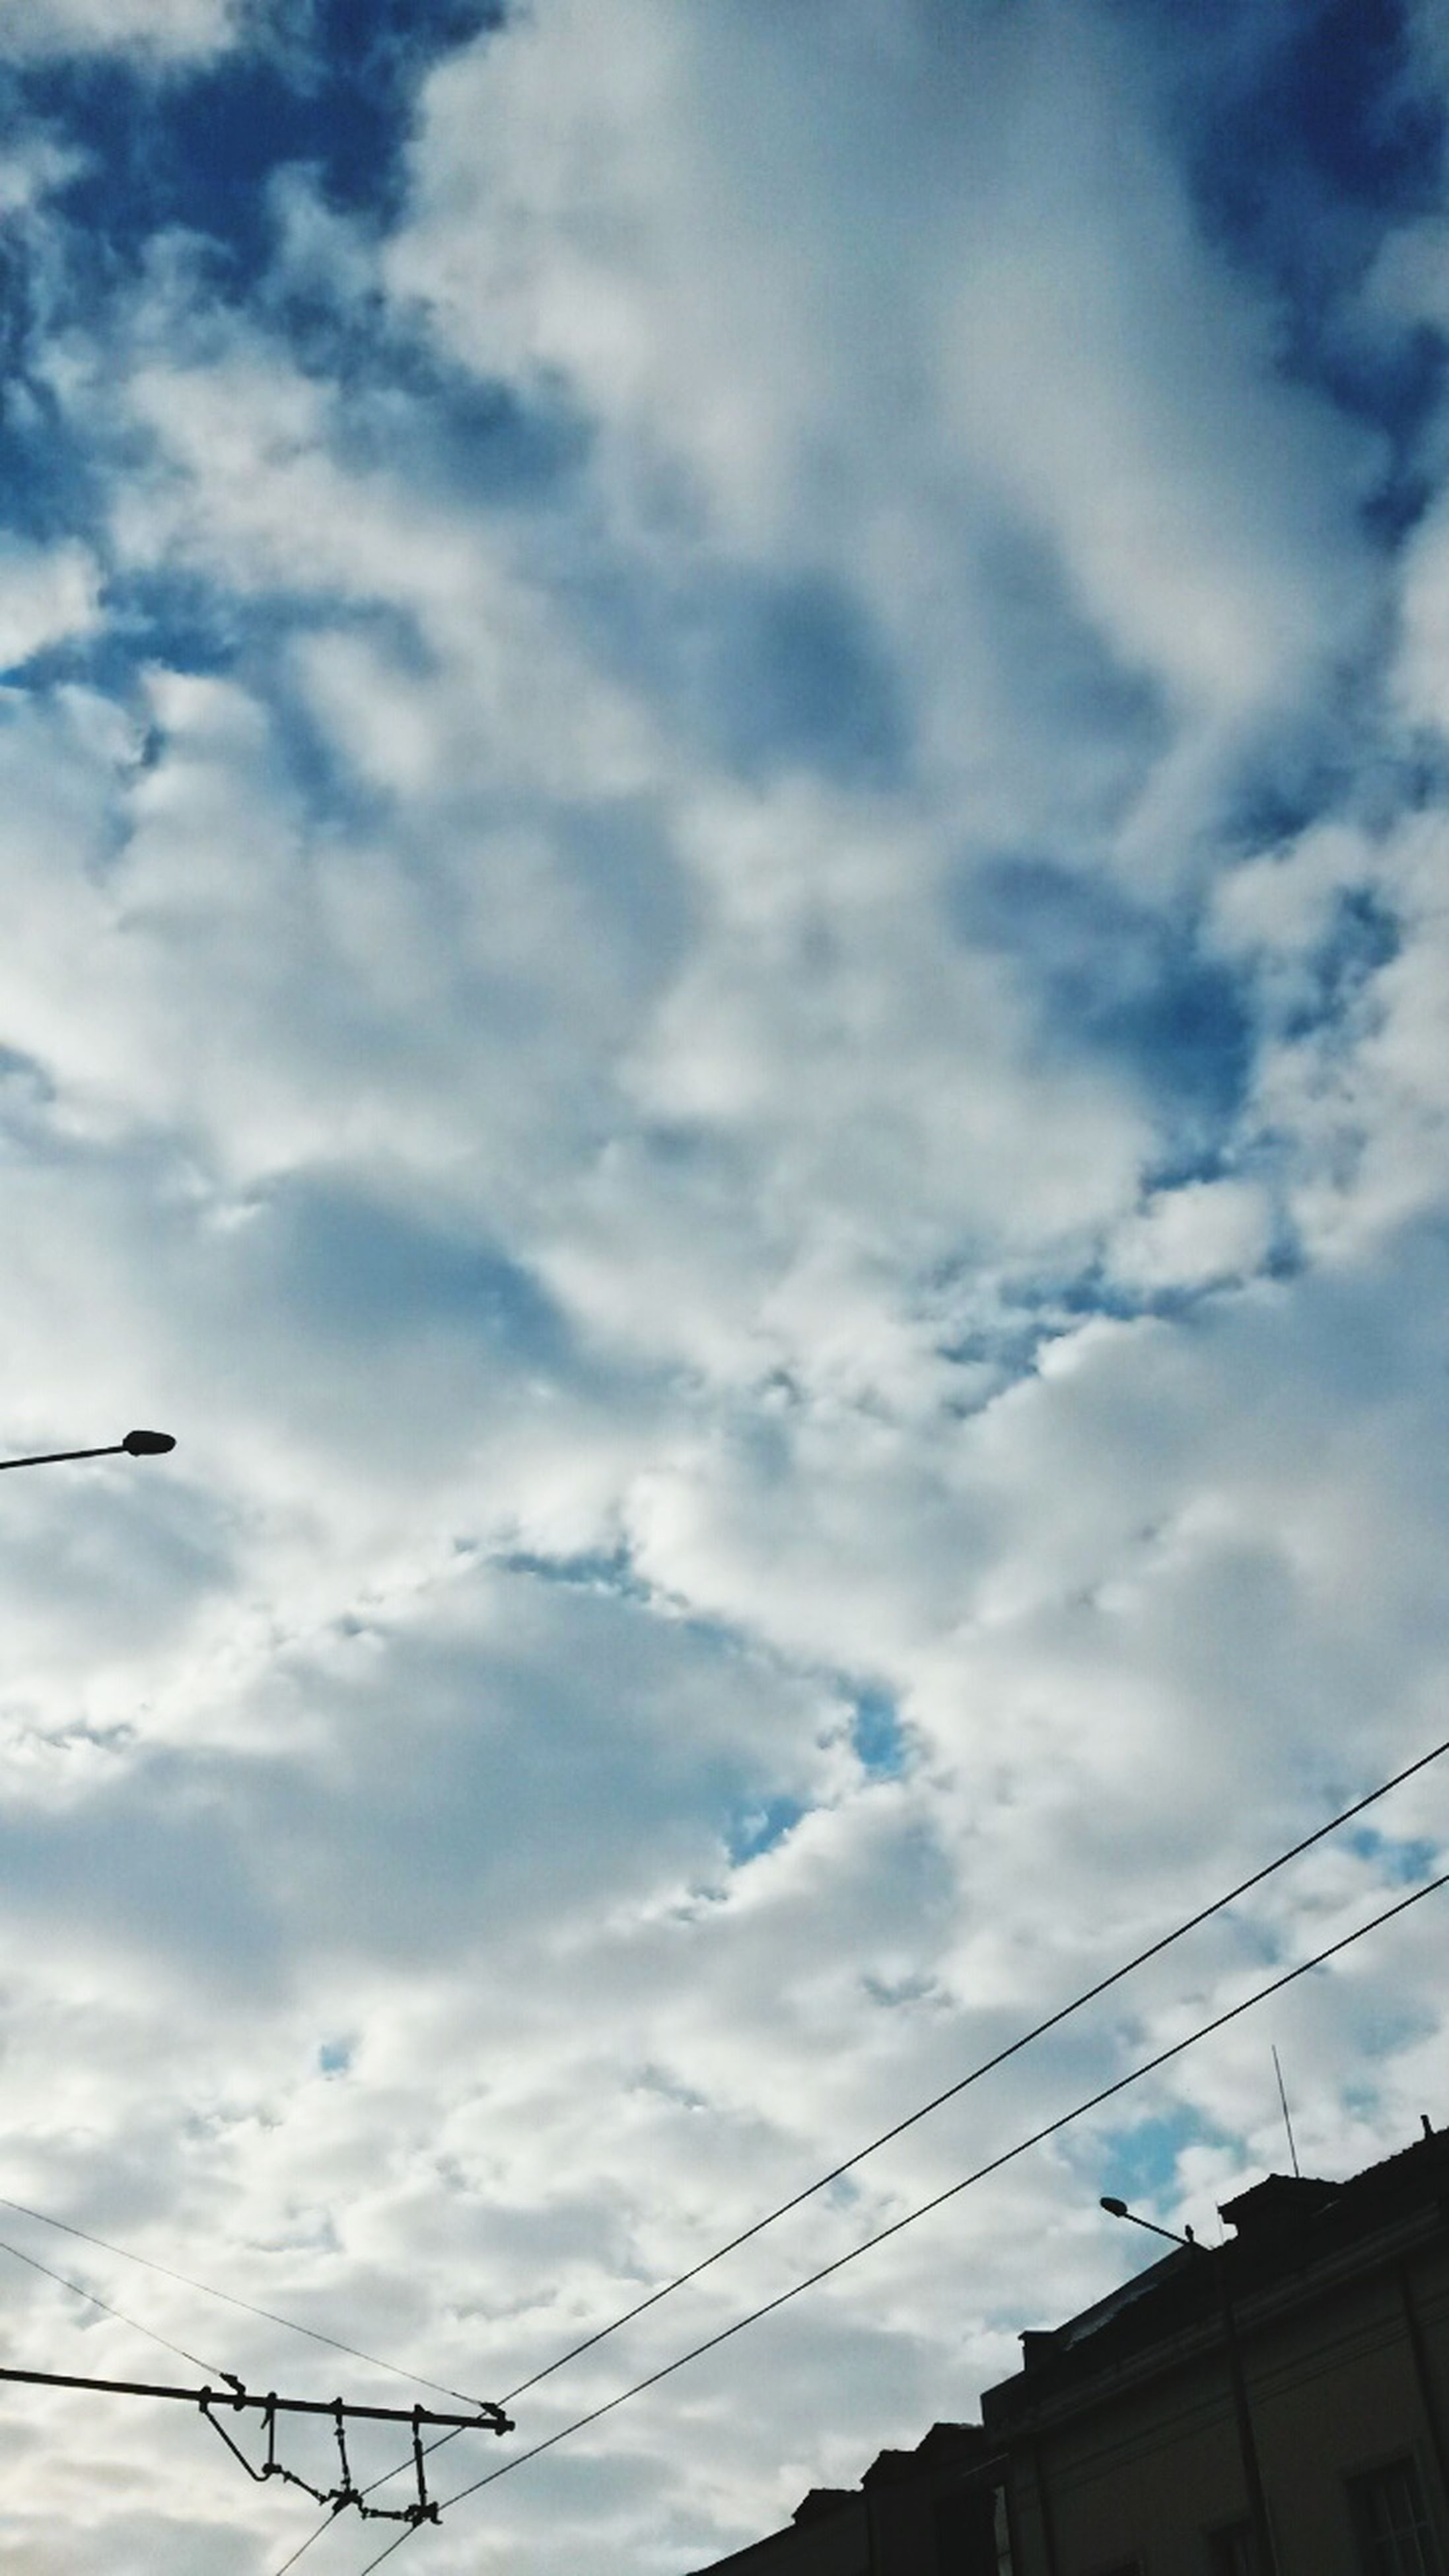 low angle view, power line, sky, connection, cable, cloud - sky, electricity pylon, electricity, power supply, cloudy, cloud, built structure, architecture, silhouette, power cable, bird, technology, building exterior, fuel and power generation, outdoors